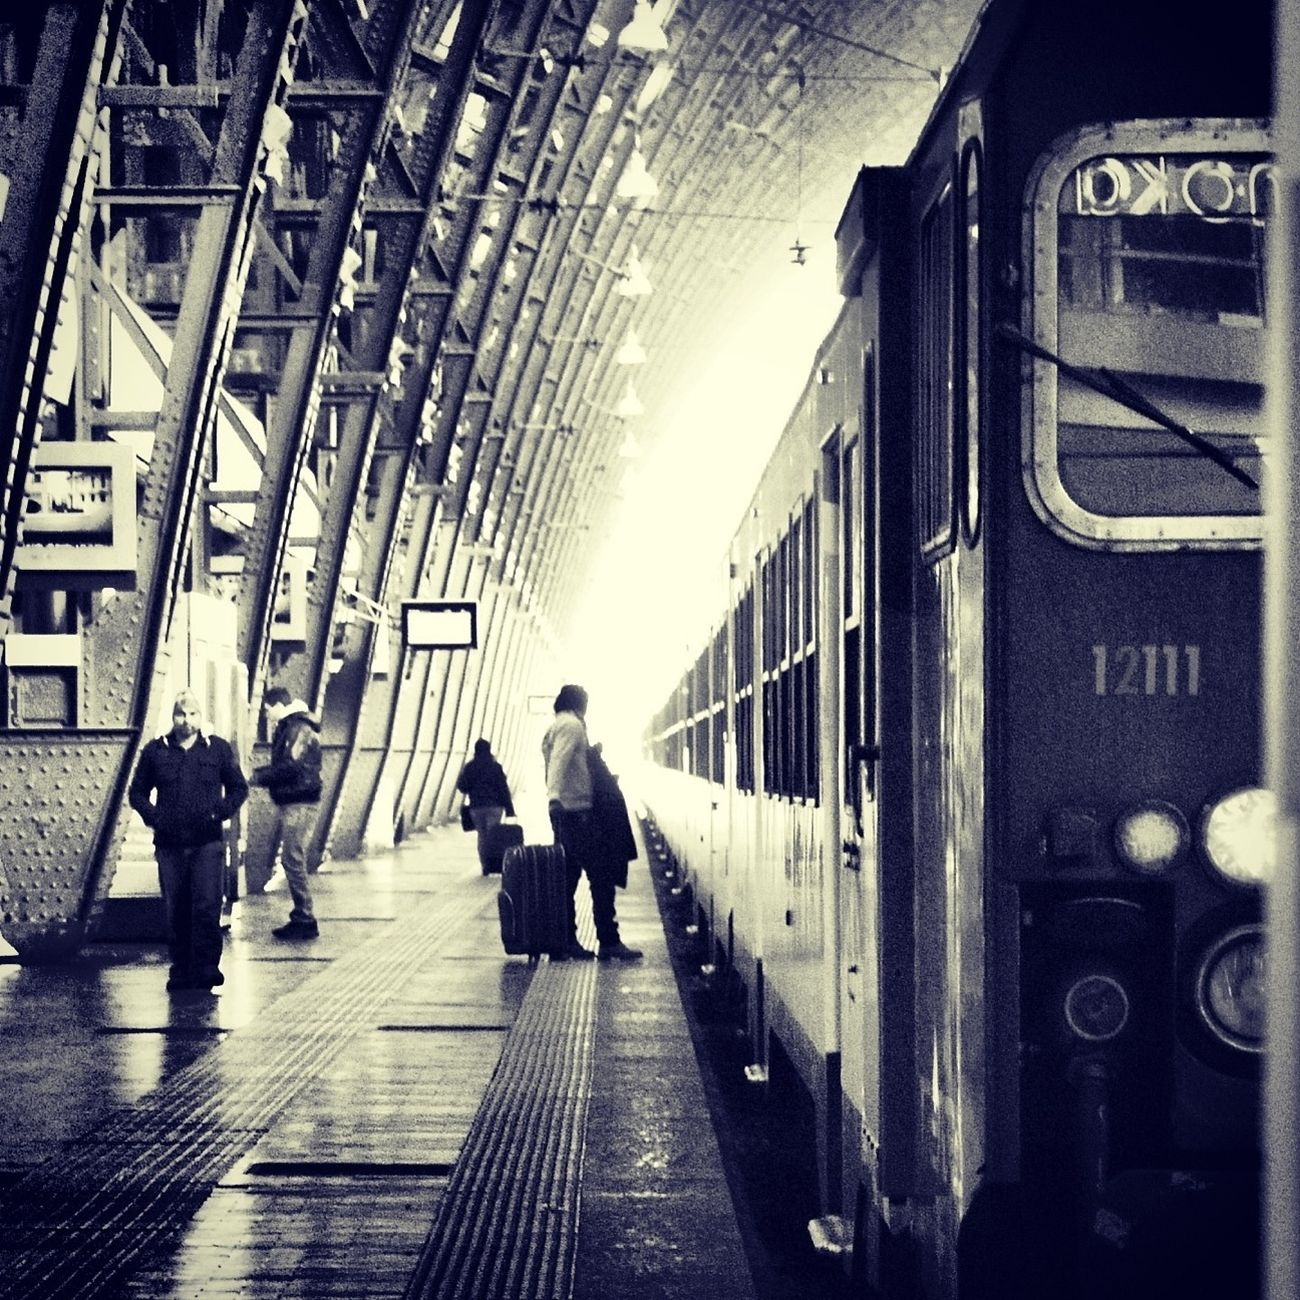 Streetphotography Blackandwhite Shootermag AMPt_community